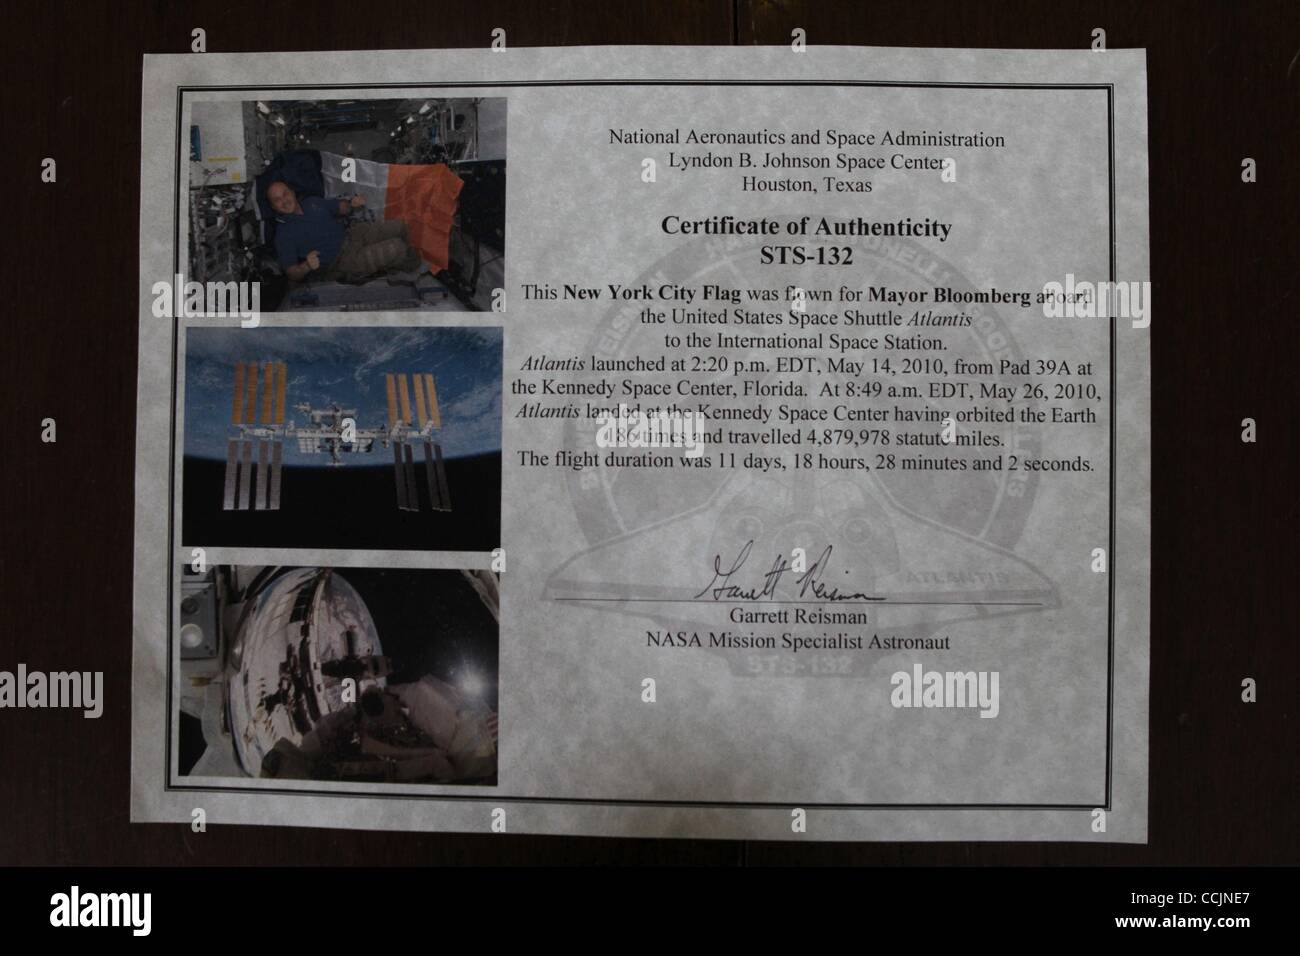 Certificate Of Authenticity Stockfotos & Certificate Of Authenticity ...